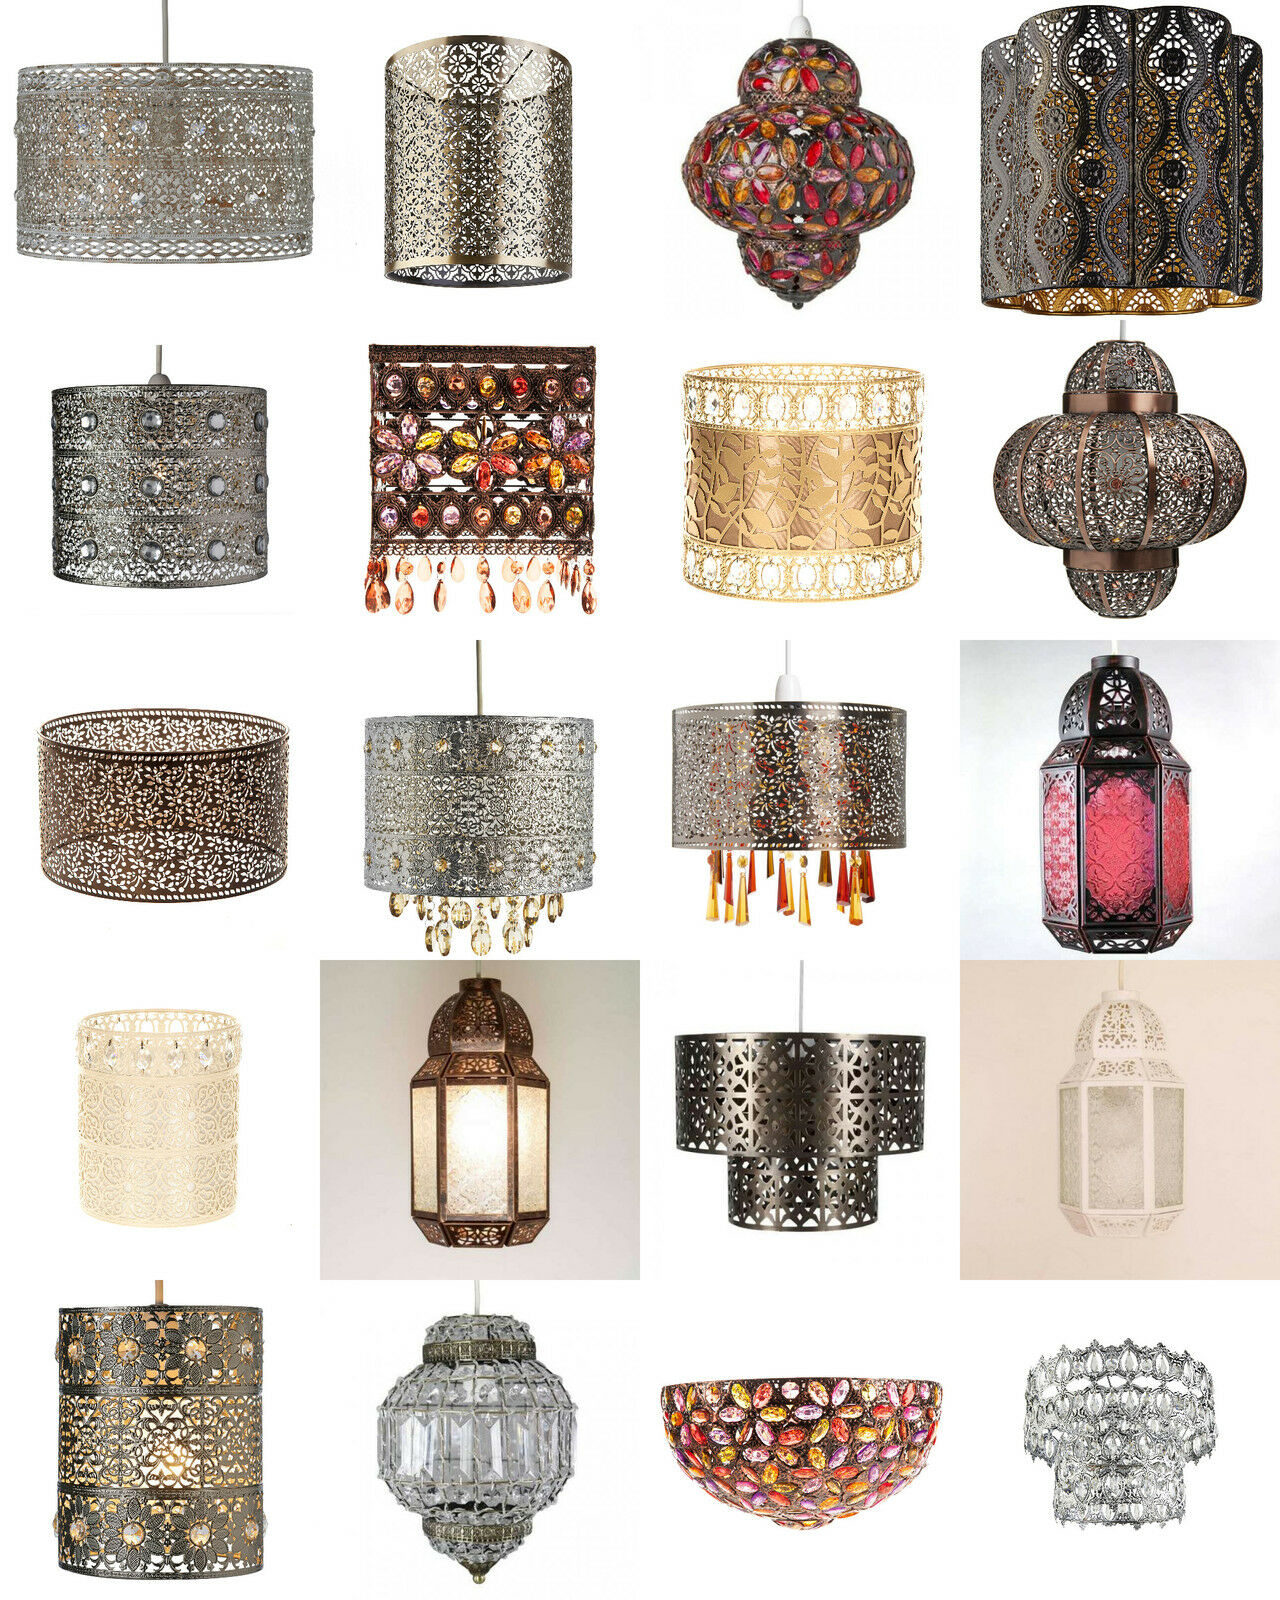 shabby chic moroccan light shade ceiling pendant lampshade. Black Bedroom Furniture Sets. Home Design Ideas